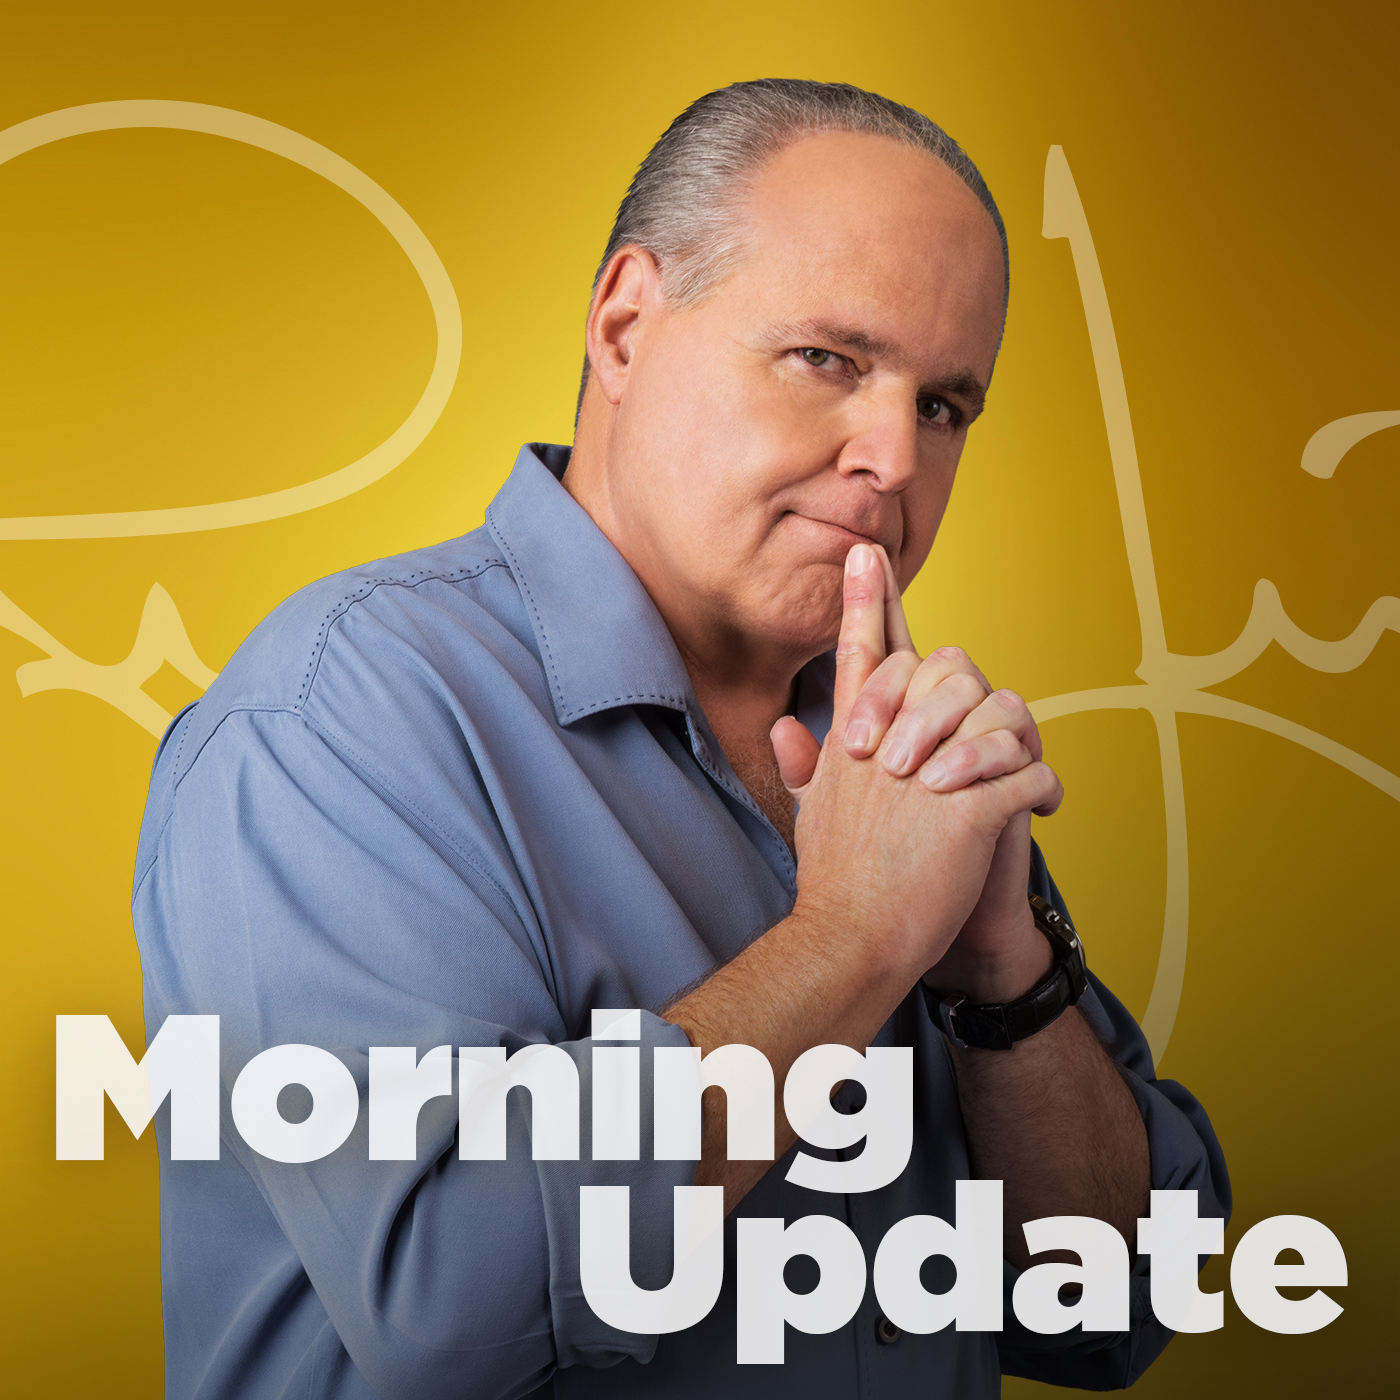 Rush Limbaugh Dec 25, 2019